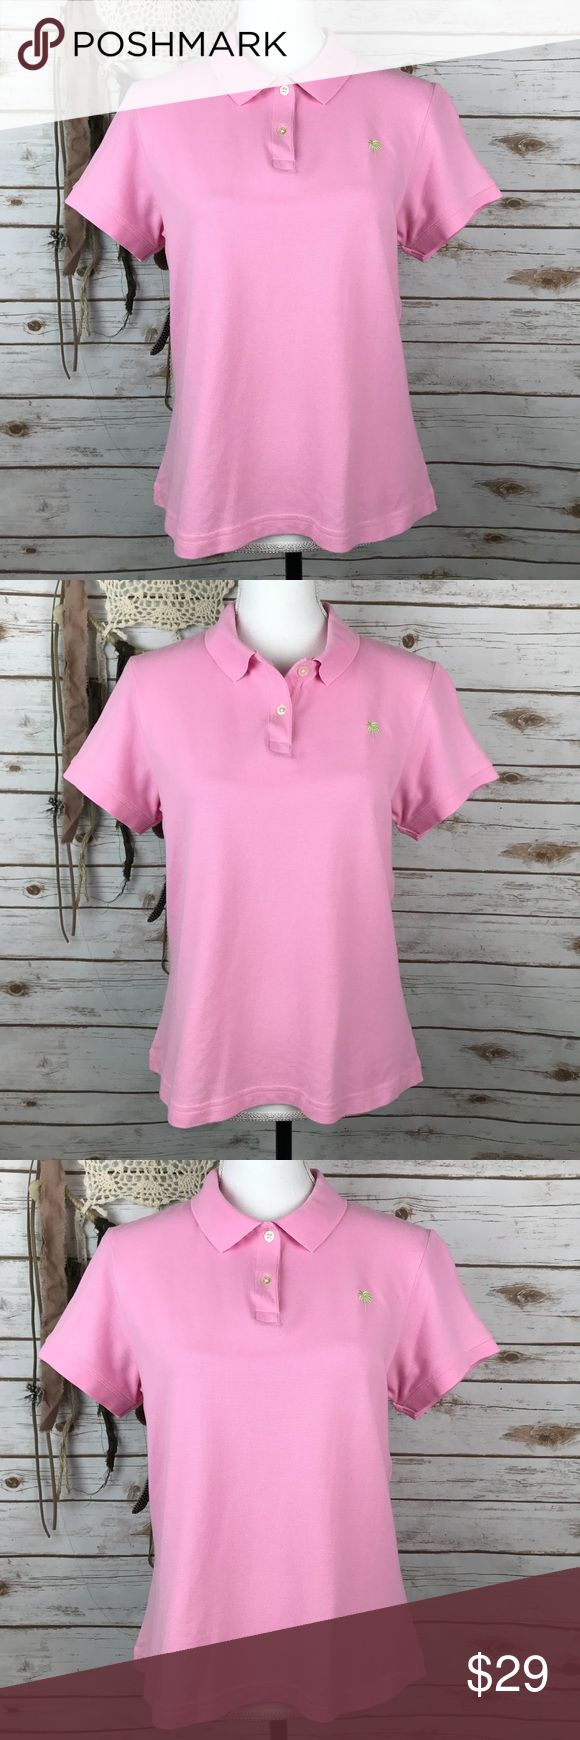 """NWOT Lilly Pulitzer Womens Pink Polo Shirt Pink  Size Large  Bust: 19"""" Waist: 23"""" Short Sleeves  Collared  Palm Tree Logo on Left Chest  Double Button Front Shrunken Style  95% Pima Cotton, 5% Spandex  Machine Wash  New without Tags  In excellent condition  No rips, holes, or stains Lilly Pulitzer Tops Blouses"""